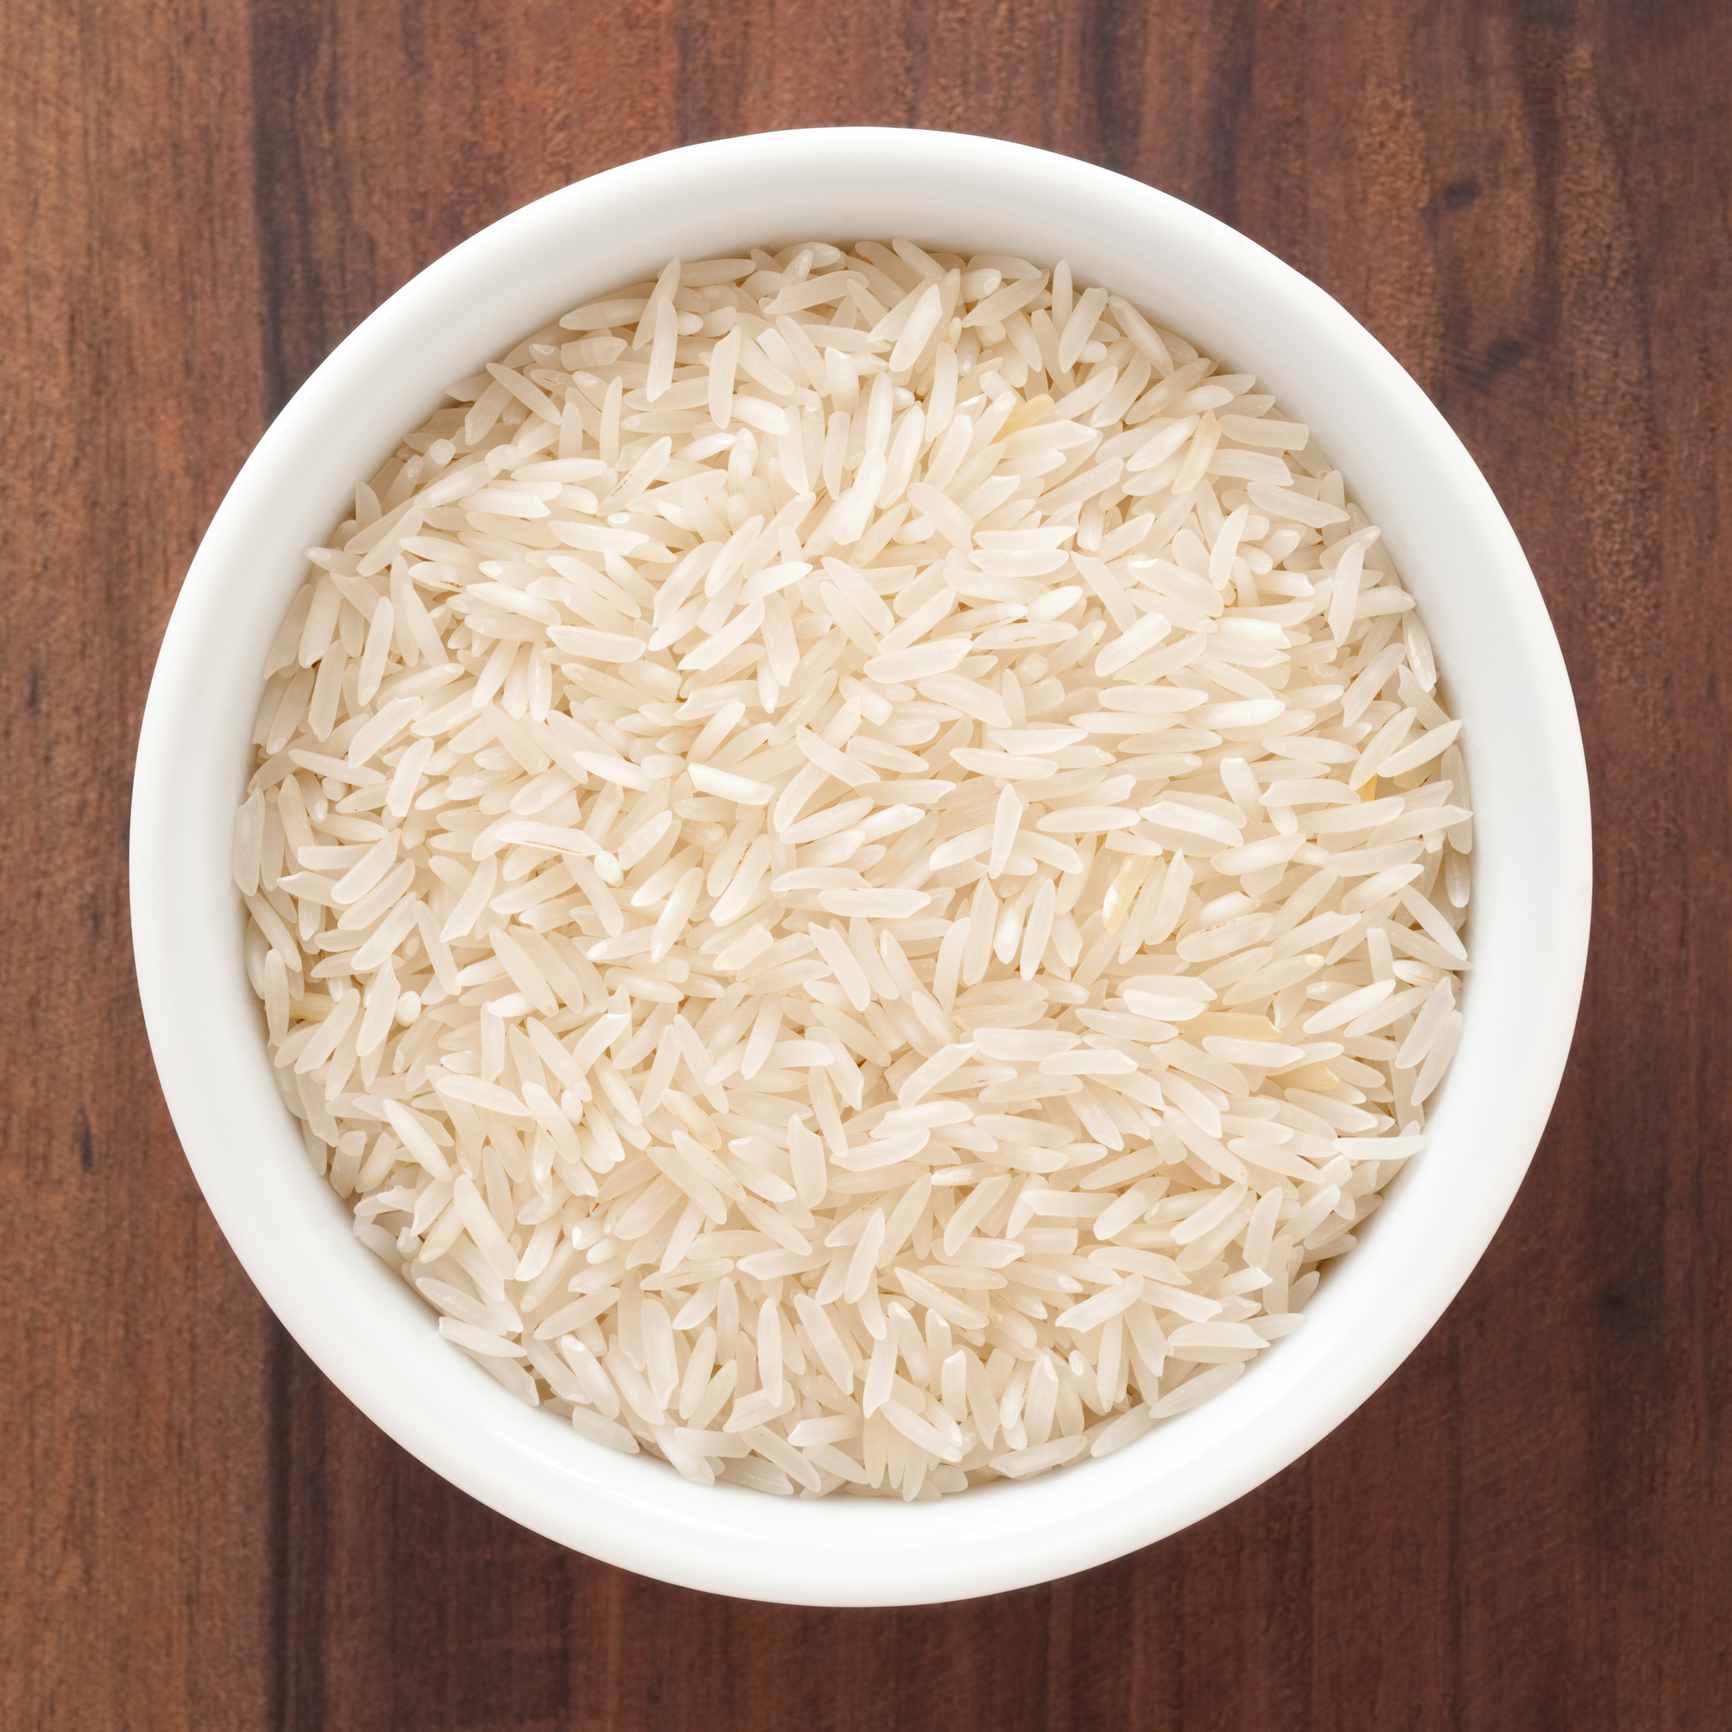 how to cook basmati rice so it has less starch